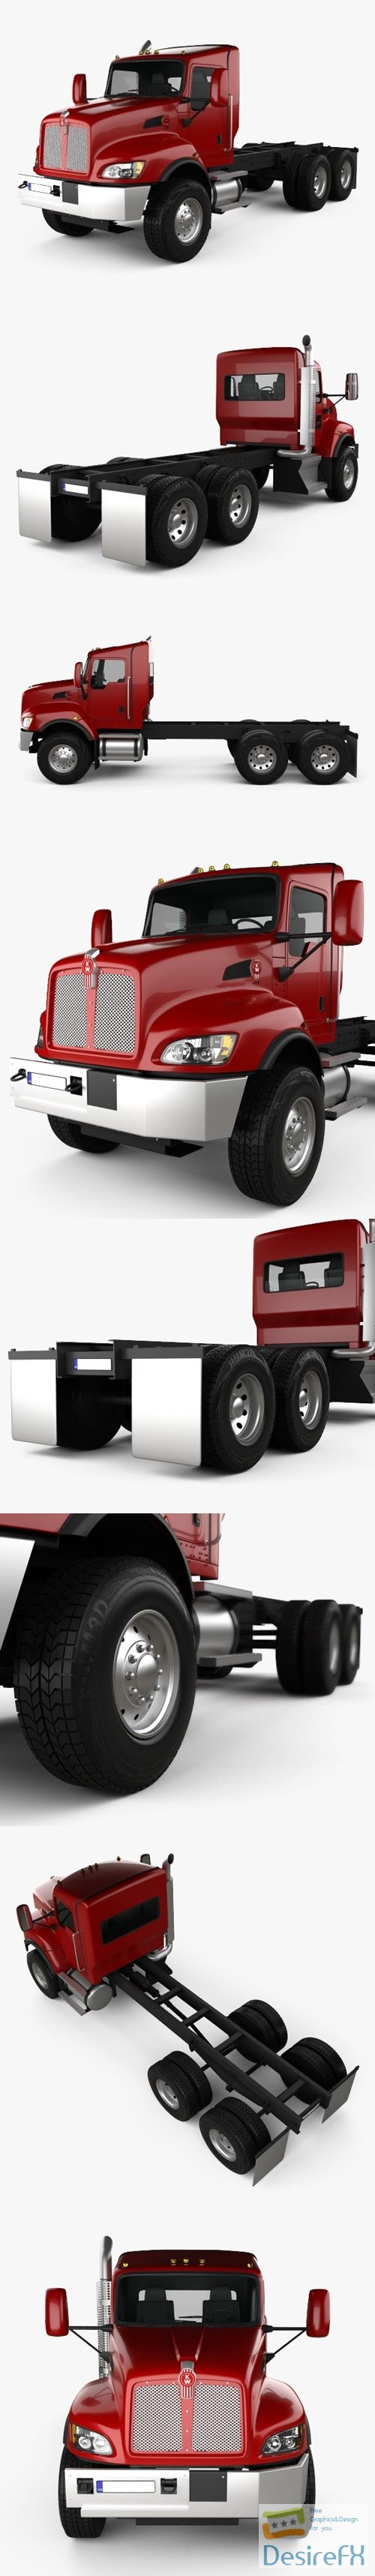 3d-models - Kenworth T470 Chassis Truck 3-axle 2009 3D Model